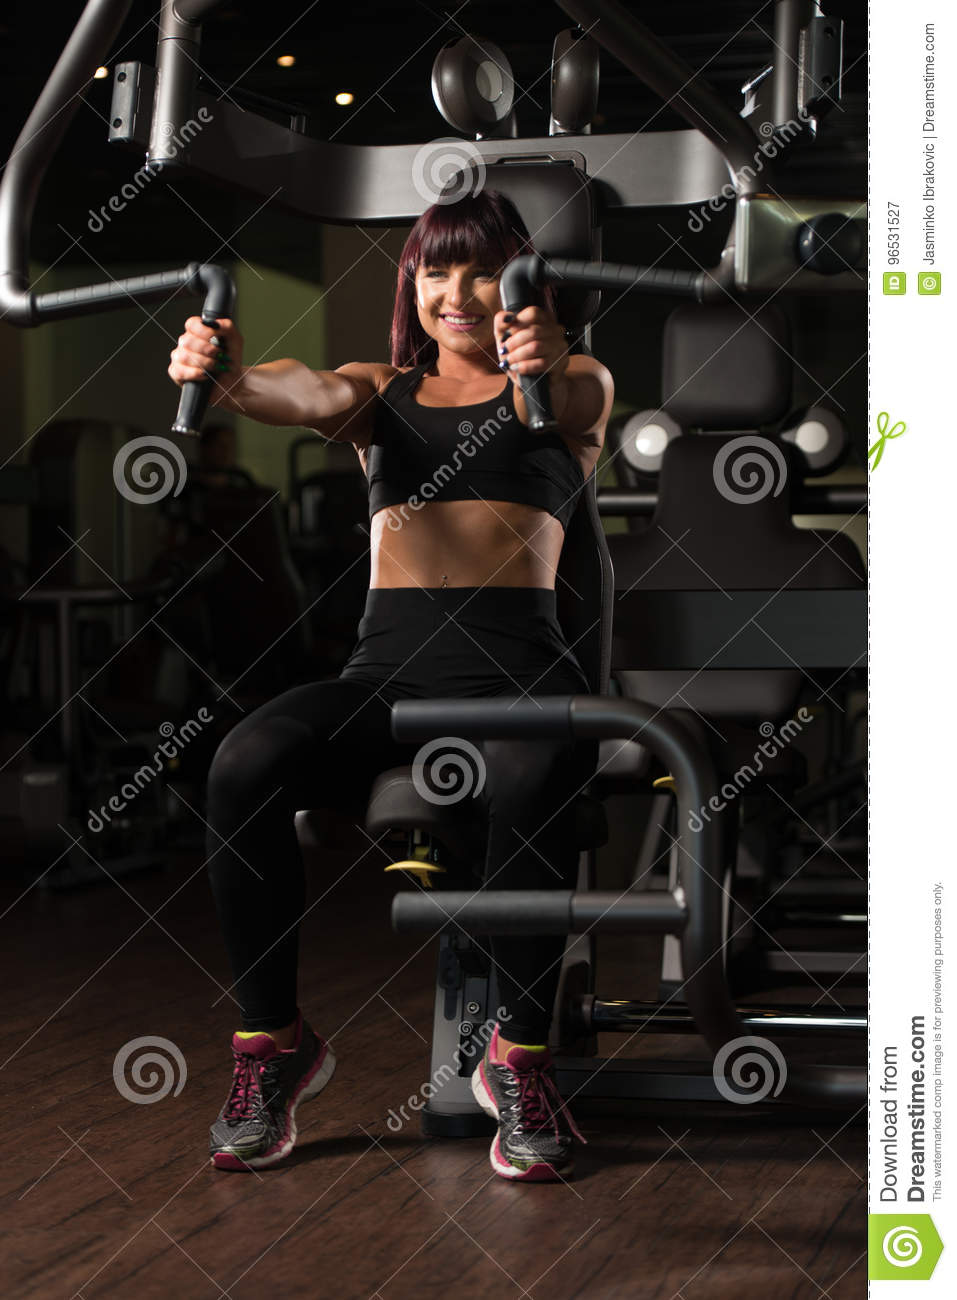 Woman Exercising Chest On Machine Stock Image - Image of